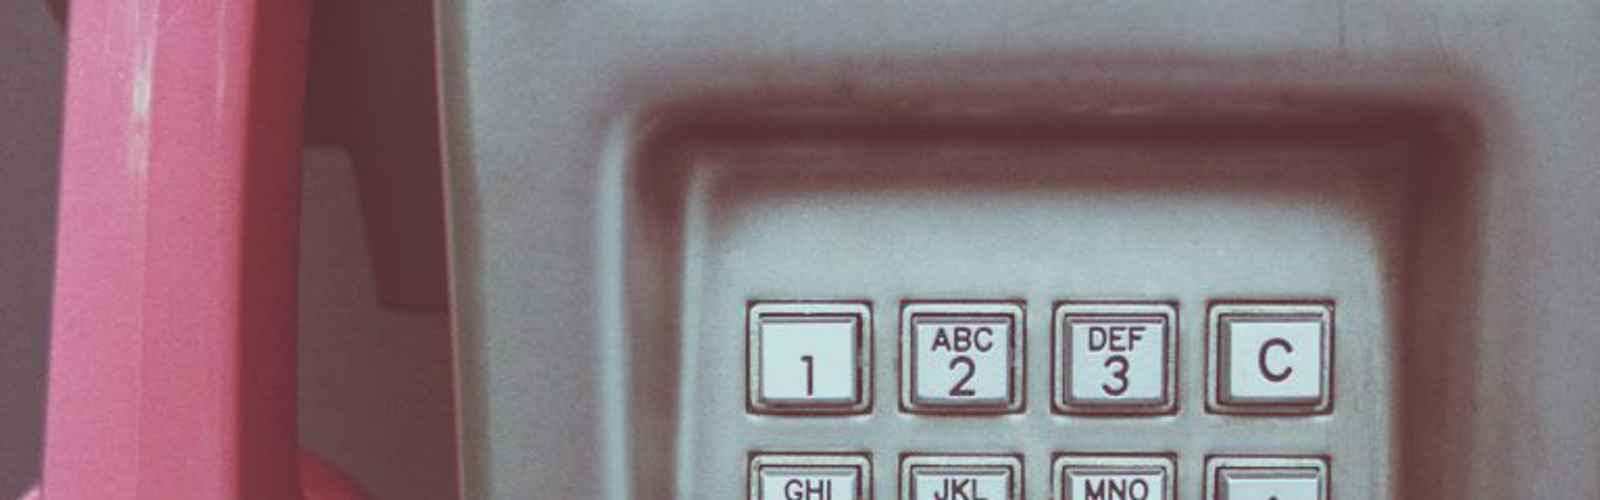 List of Dial Codes for Your Phone System